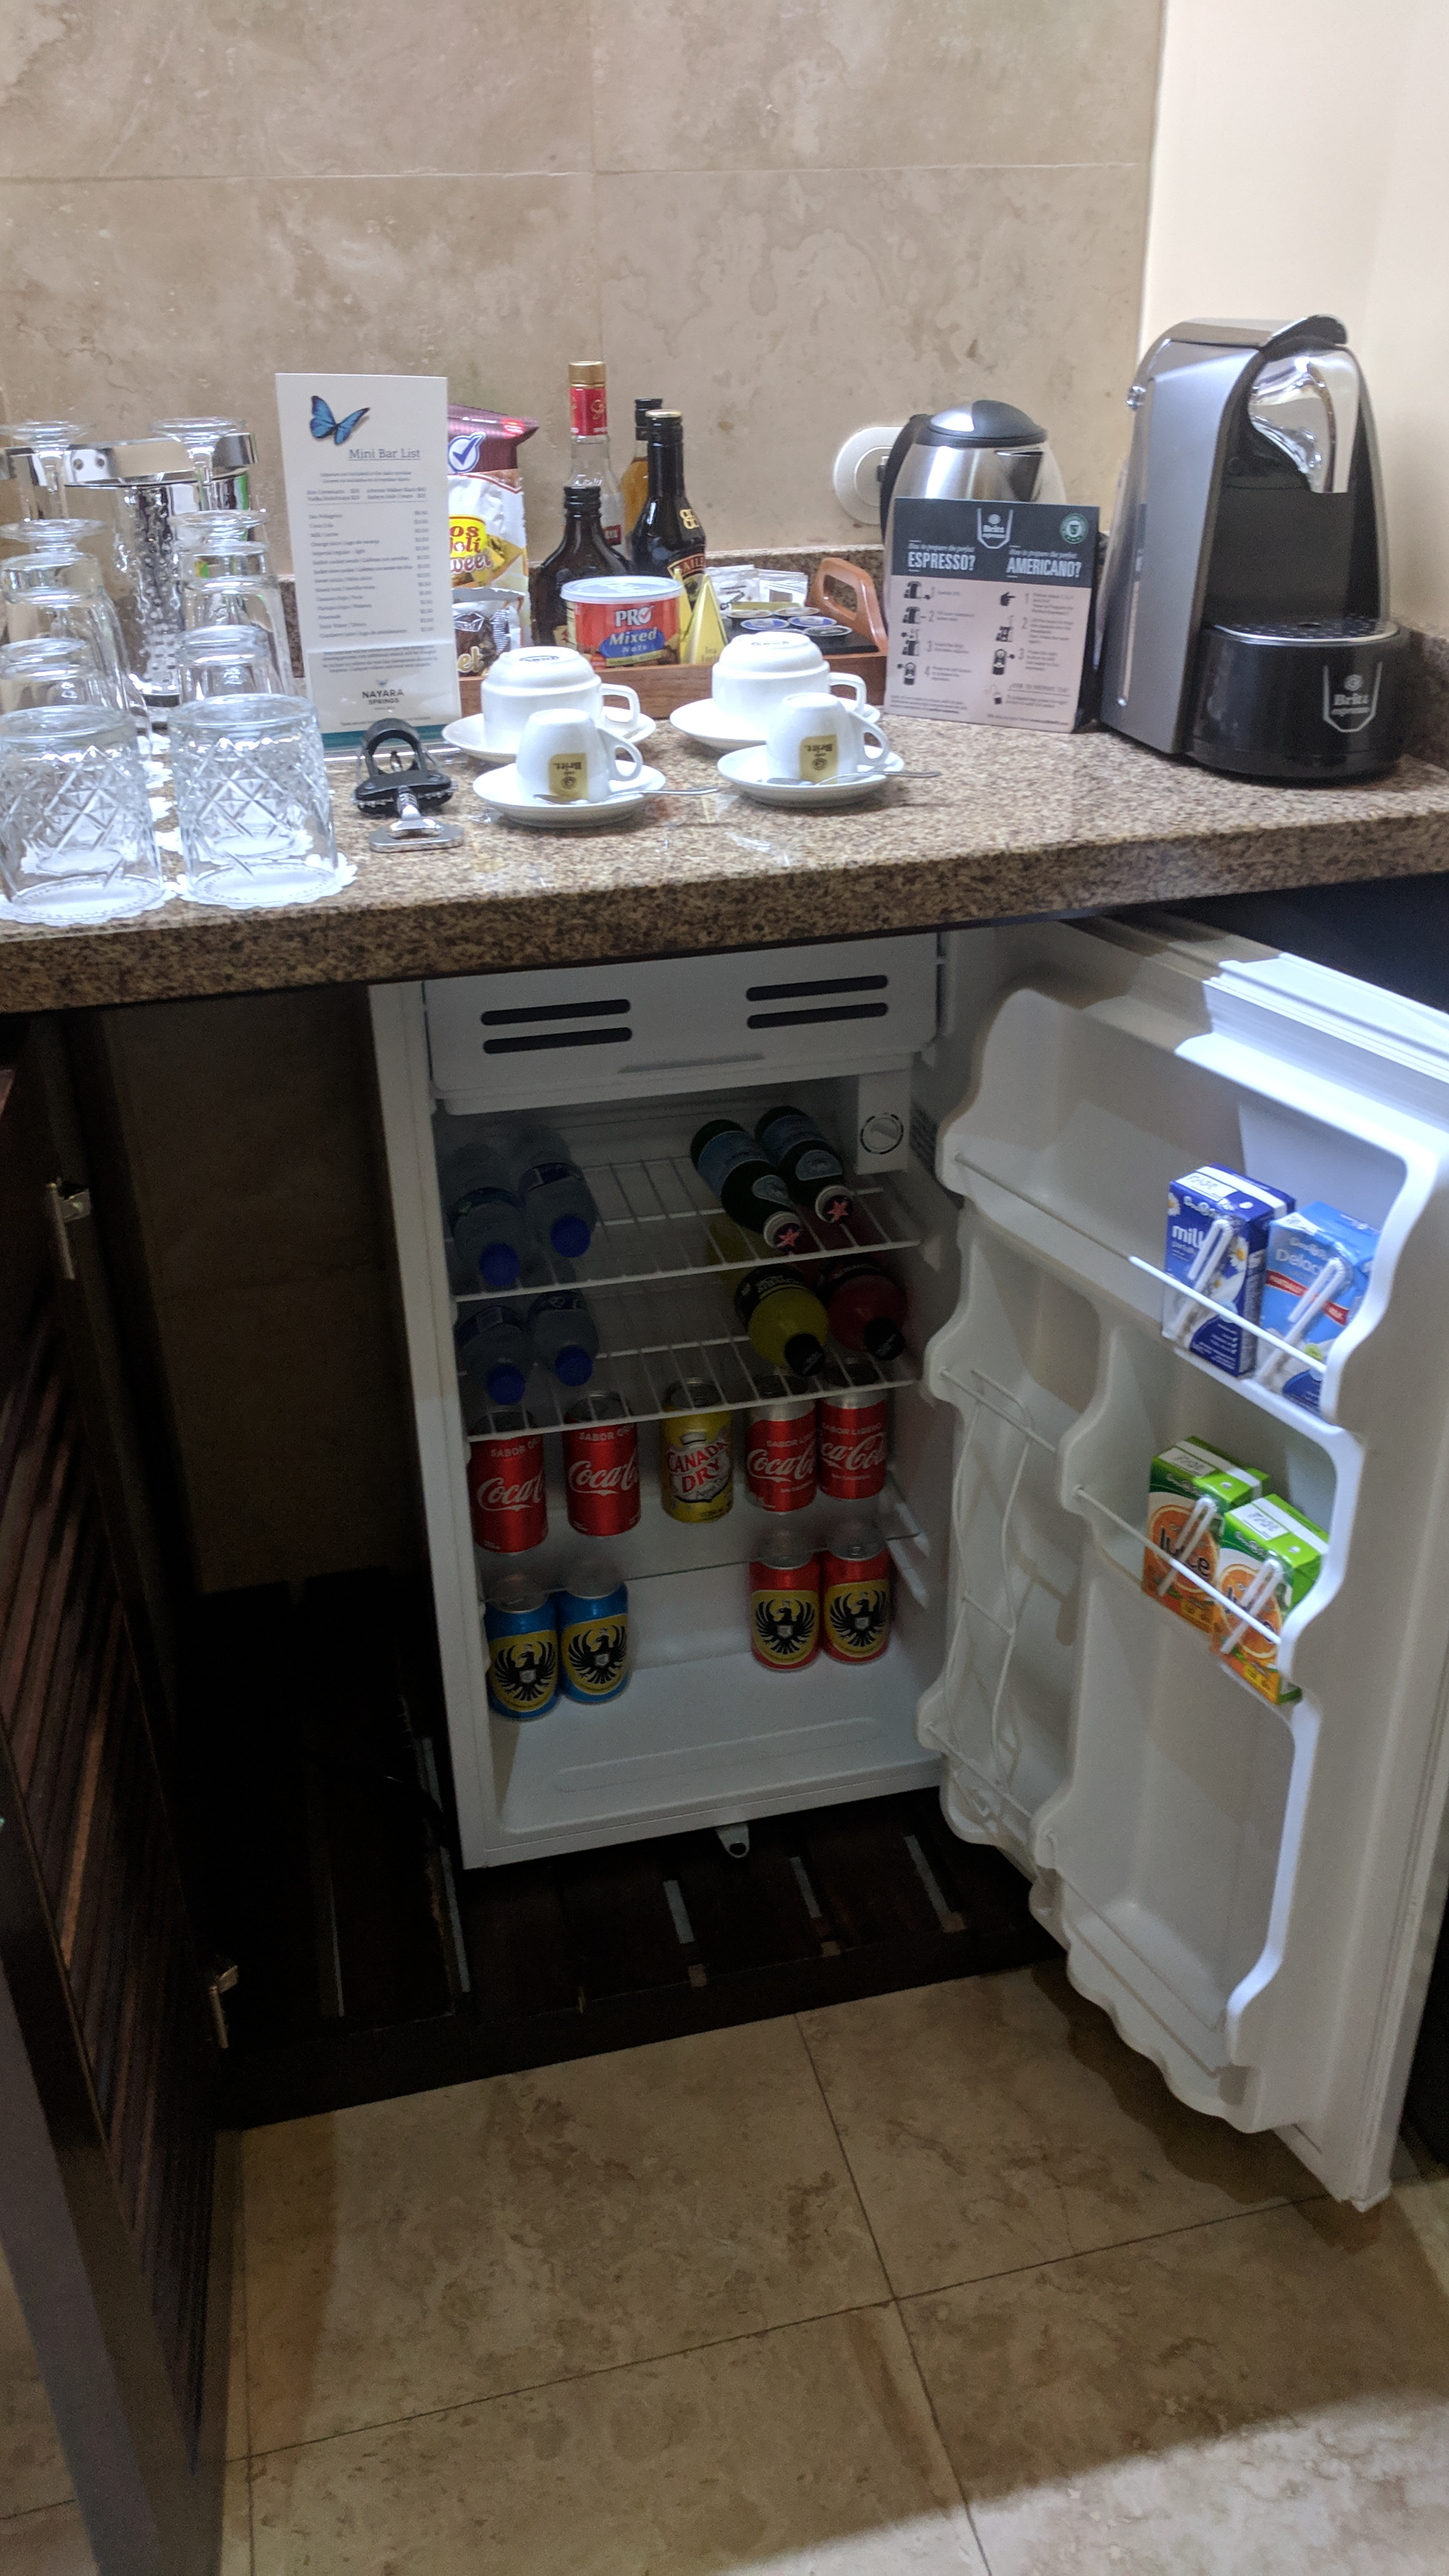 The fridge was also full and included in the rate (refilled daily). Plenty of beer, soft drinks, water, and juices.